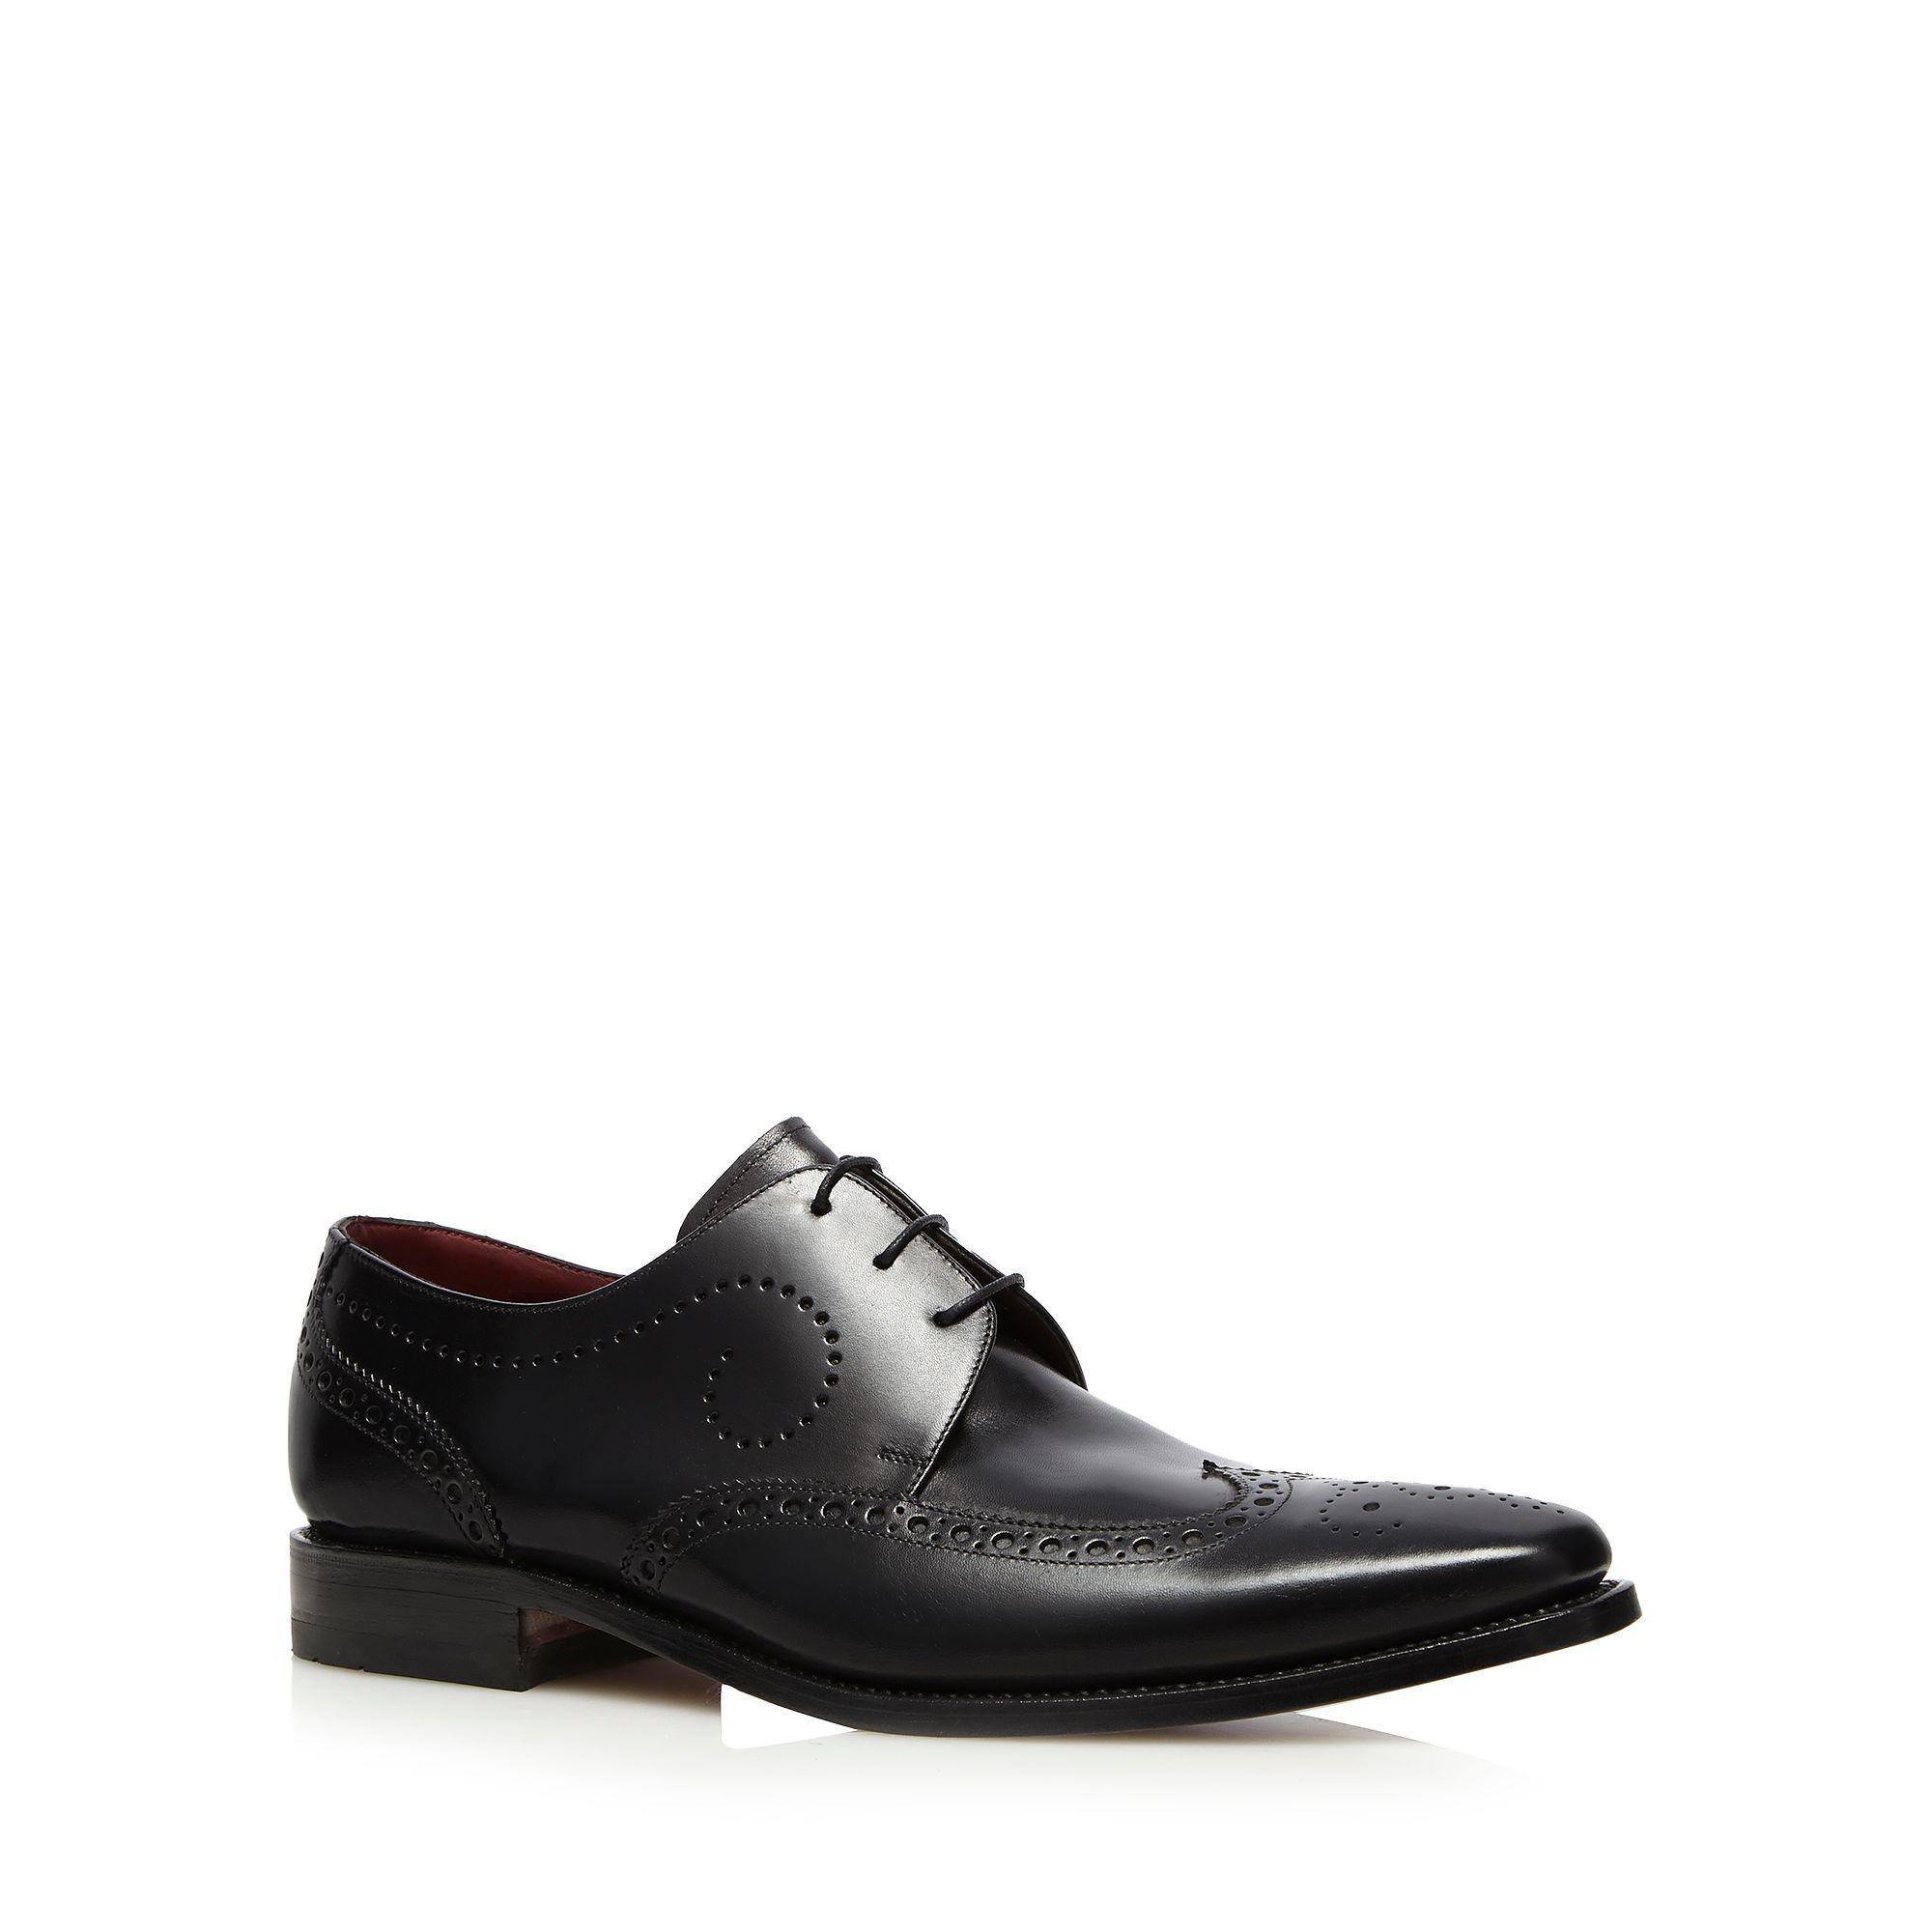 Black leather 'Kruger' brogues shop for cheap price wiki for sale with mastercard for sale buy cheap Inexpensive APaNMB